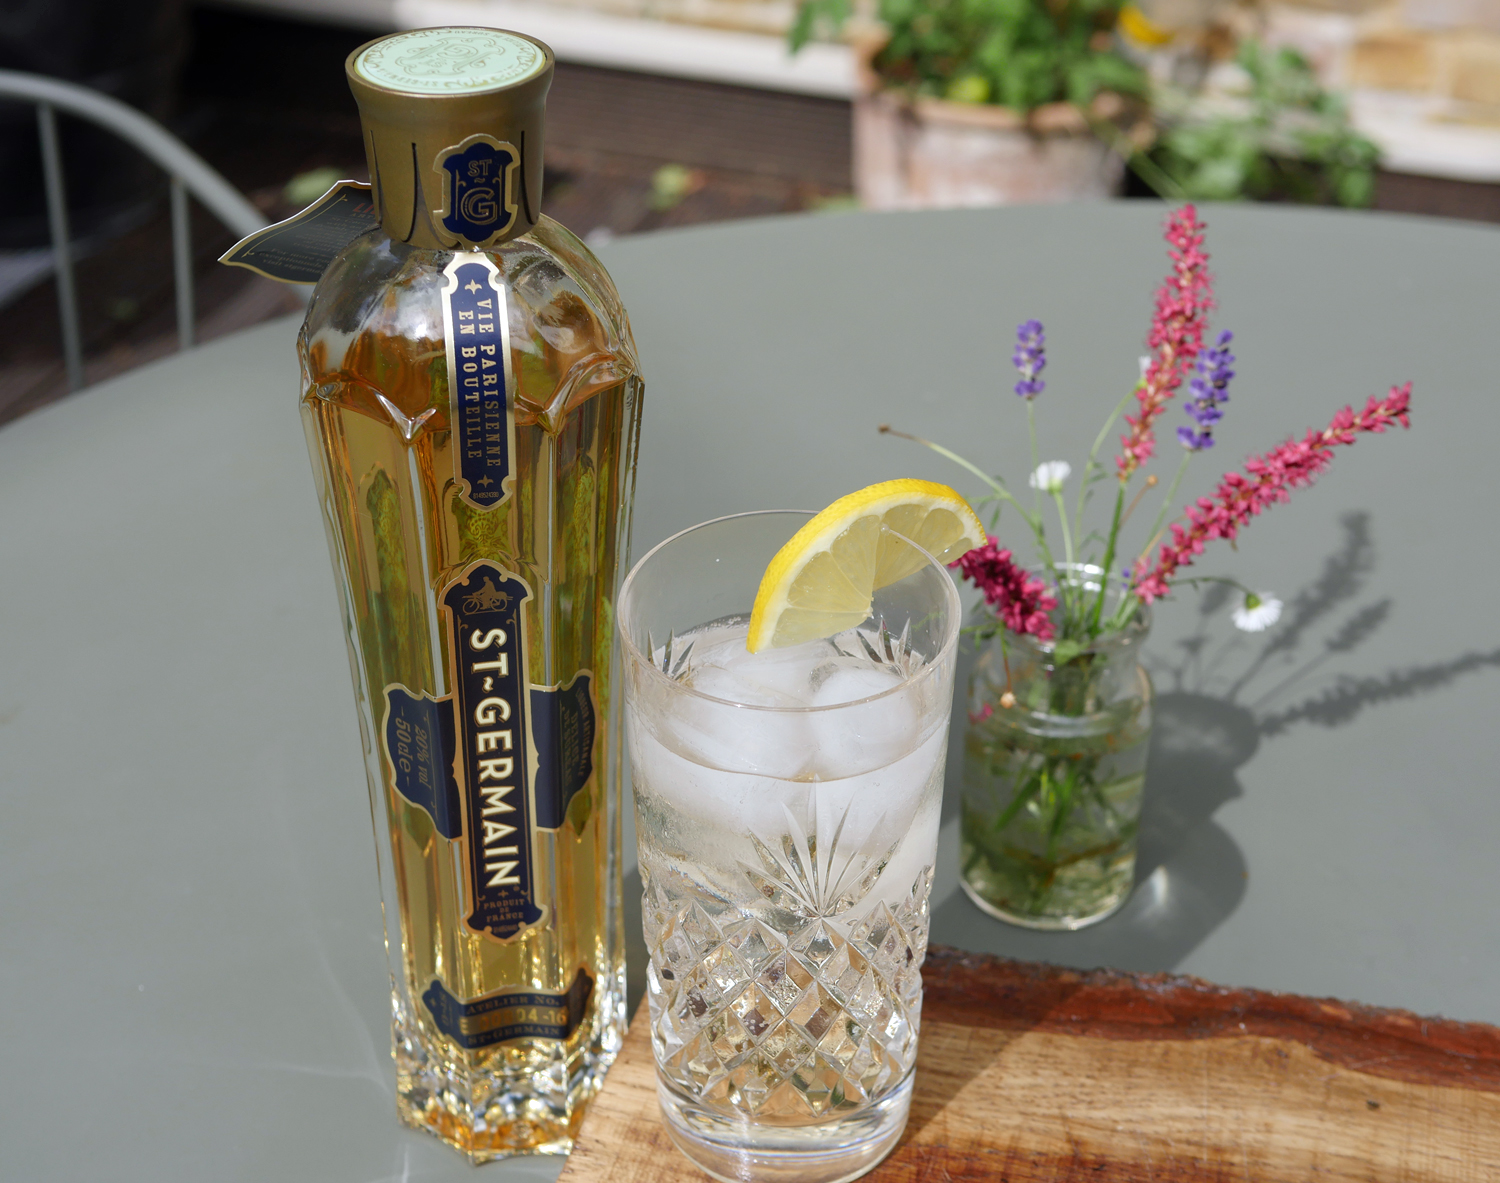 St Germain Spritz Cocktail